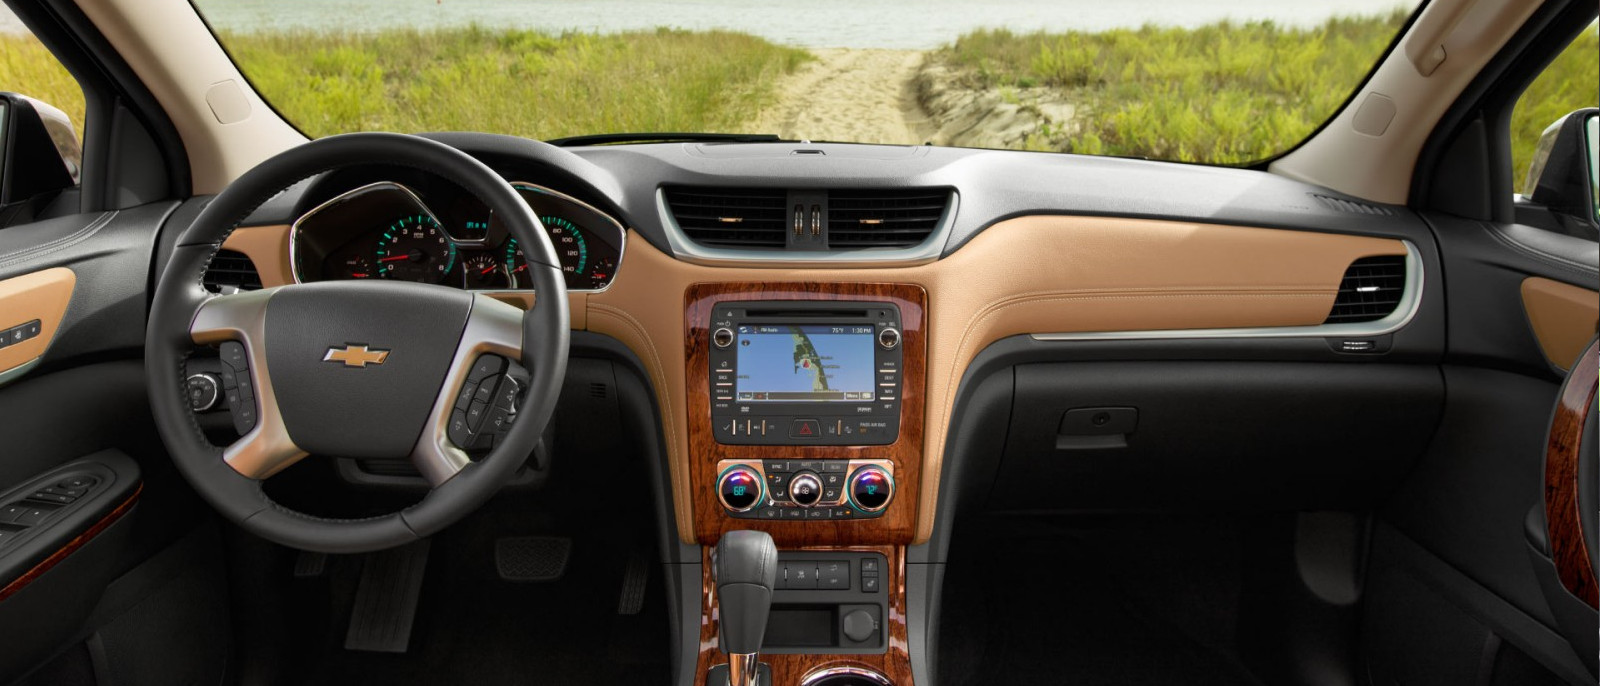 traverses years what model traverse from of chevrolet family the chevy to s ltz each expect